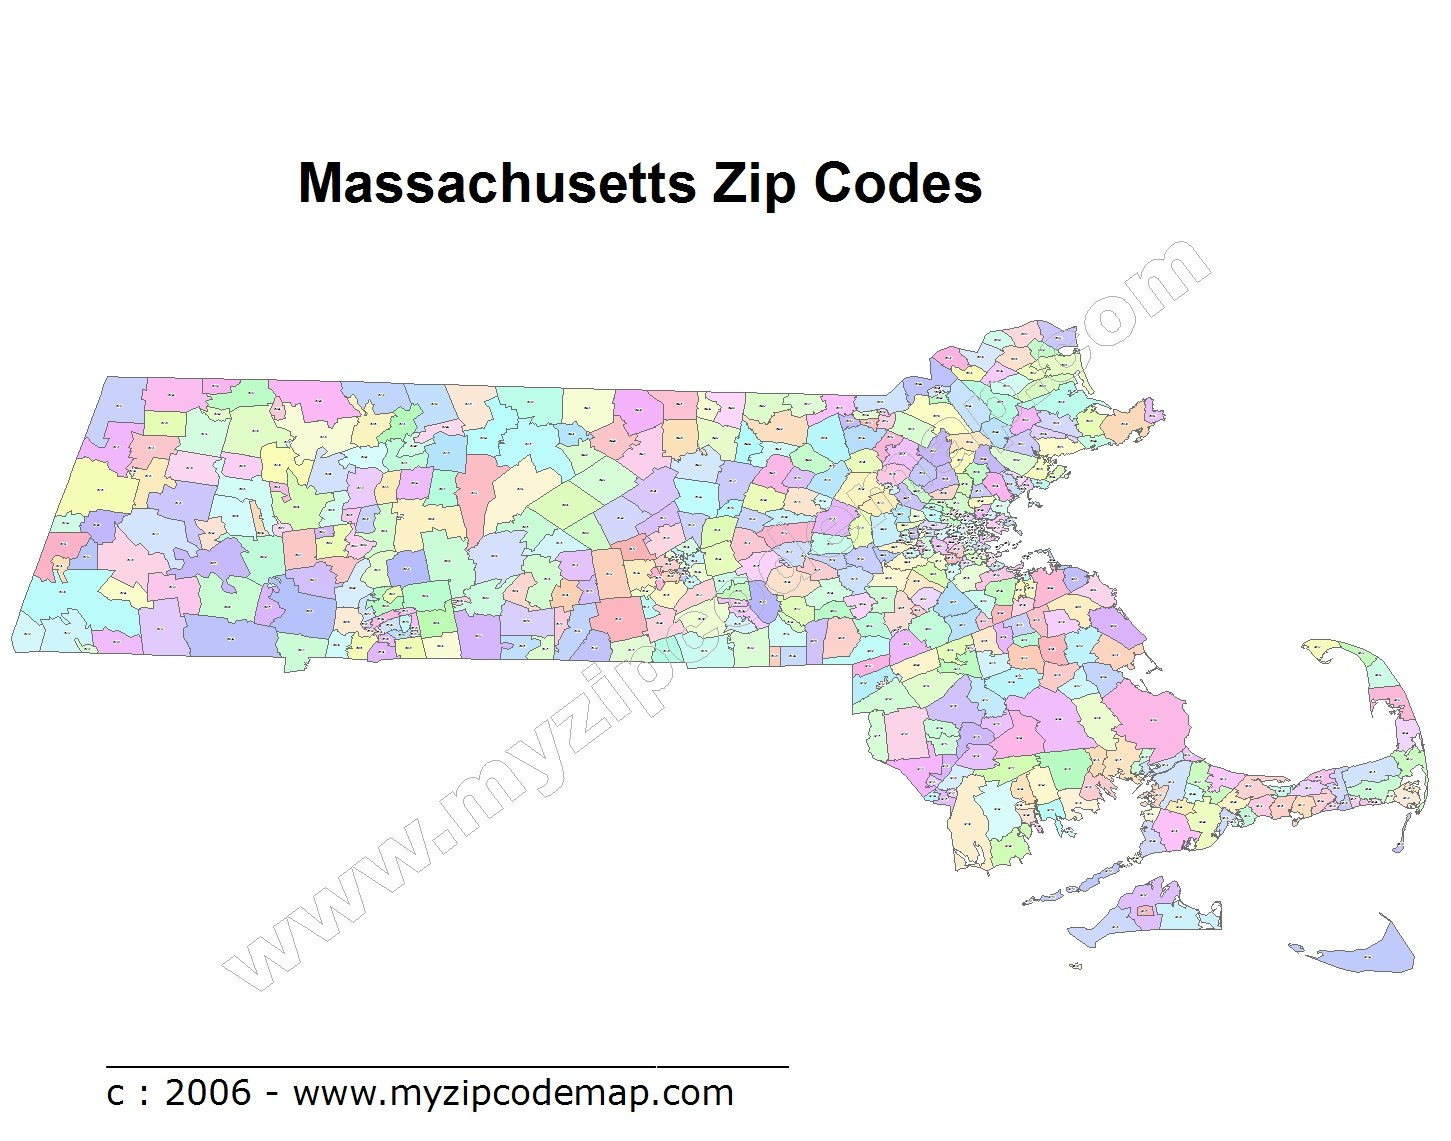 Massachusetts (MA) Zip Code Map